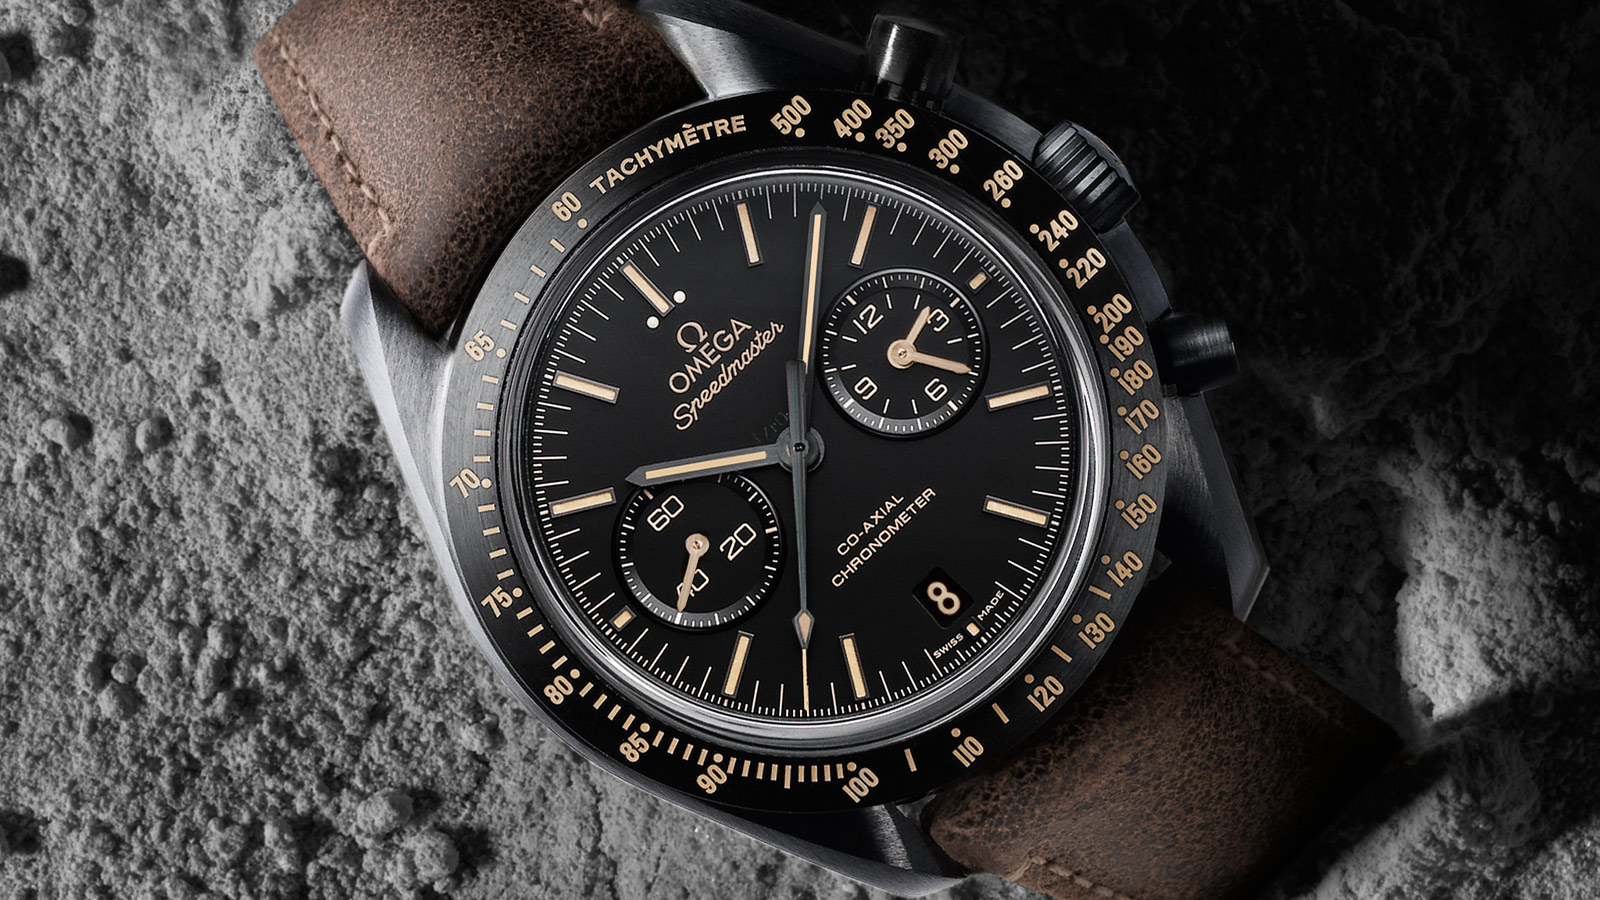 Speedmaster Moonwatch Moonwatch Omega Co‑Axial Chronograph 44.25 mm - 311.92.44.51.01.006 - View 1